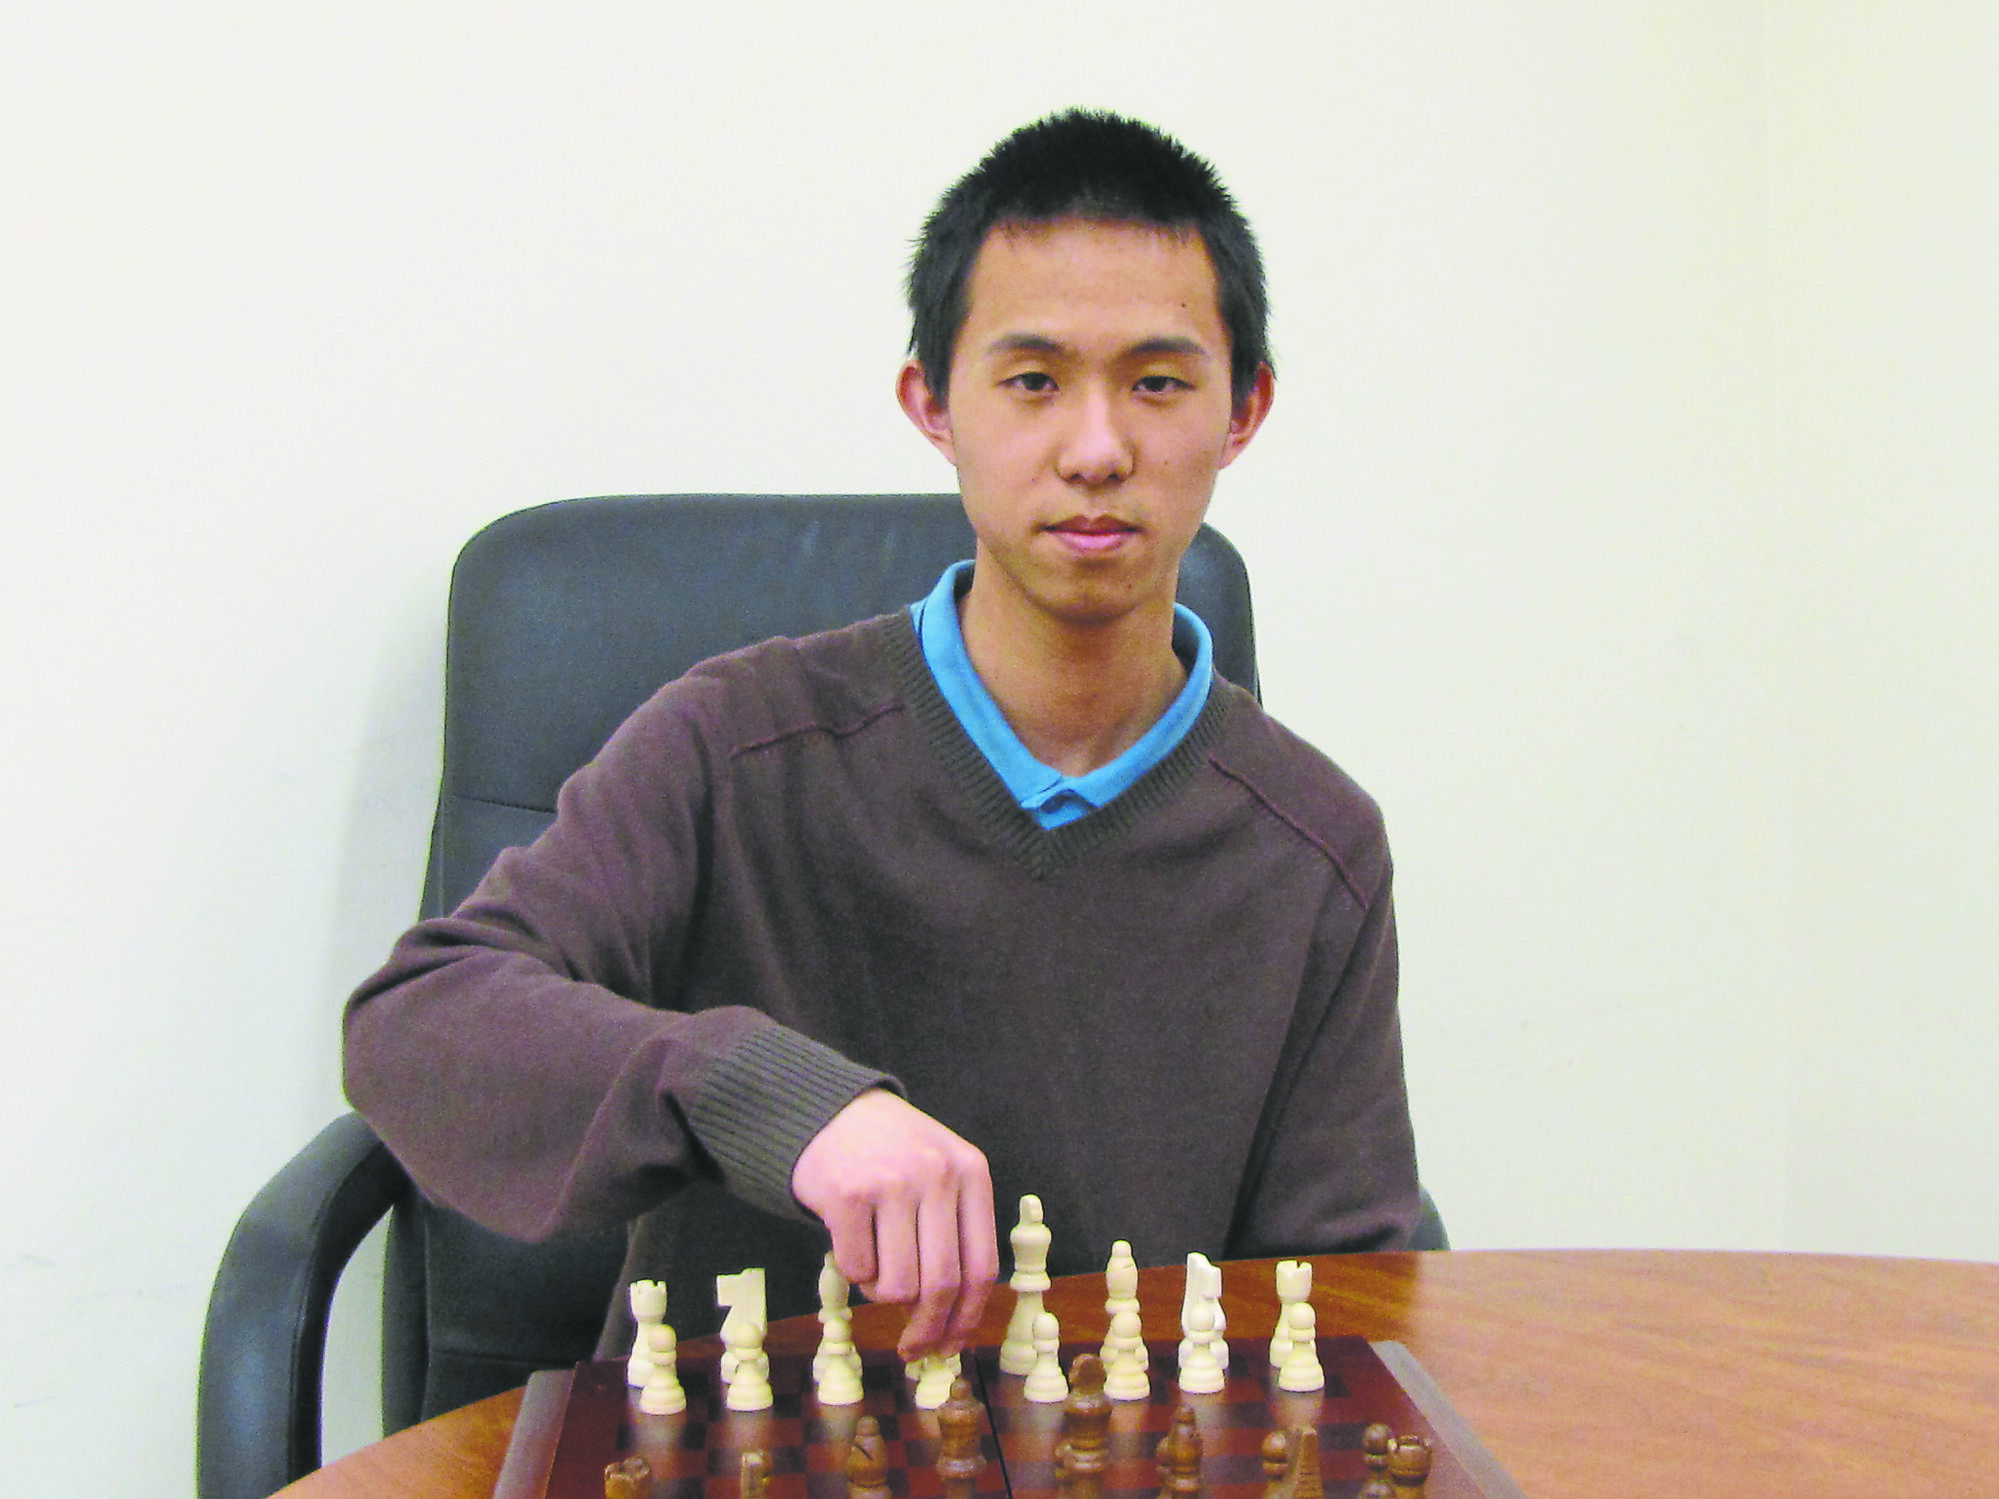 Martin Yin took home the Grade 12 provincial chess title on March 15 at the University of Manitoba.